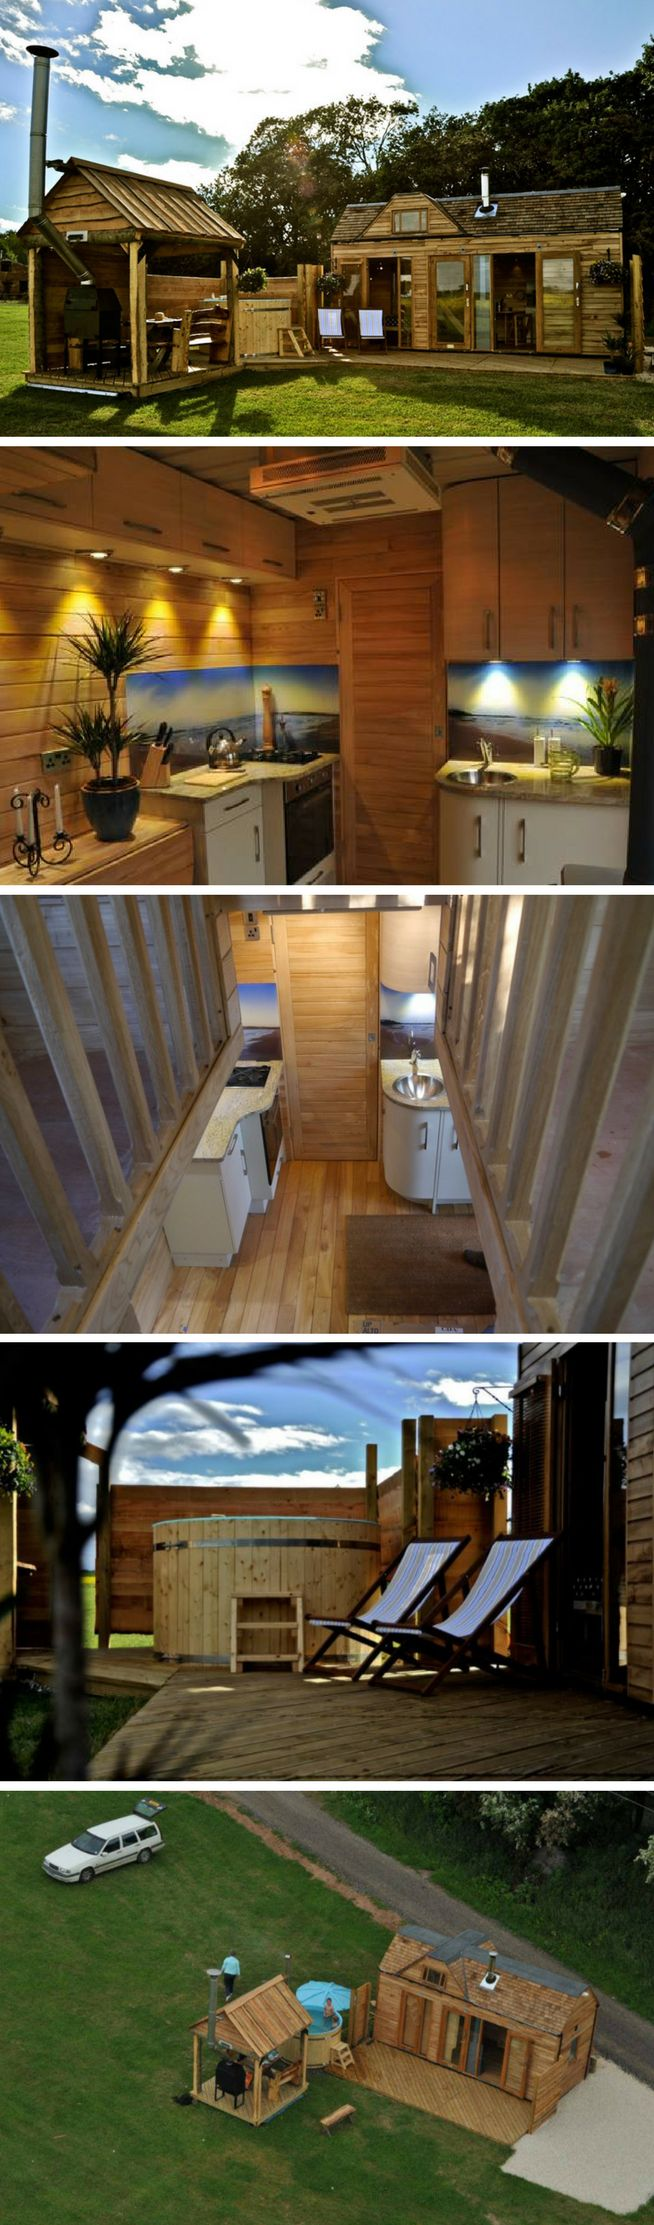 TINYWOOD ONE SHIPPING CONTAINER HOUSE